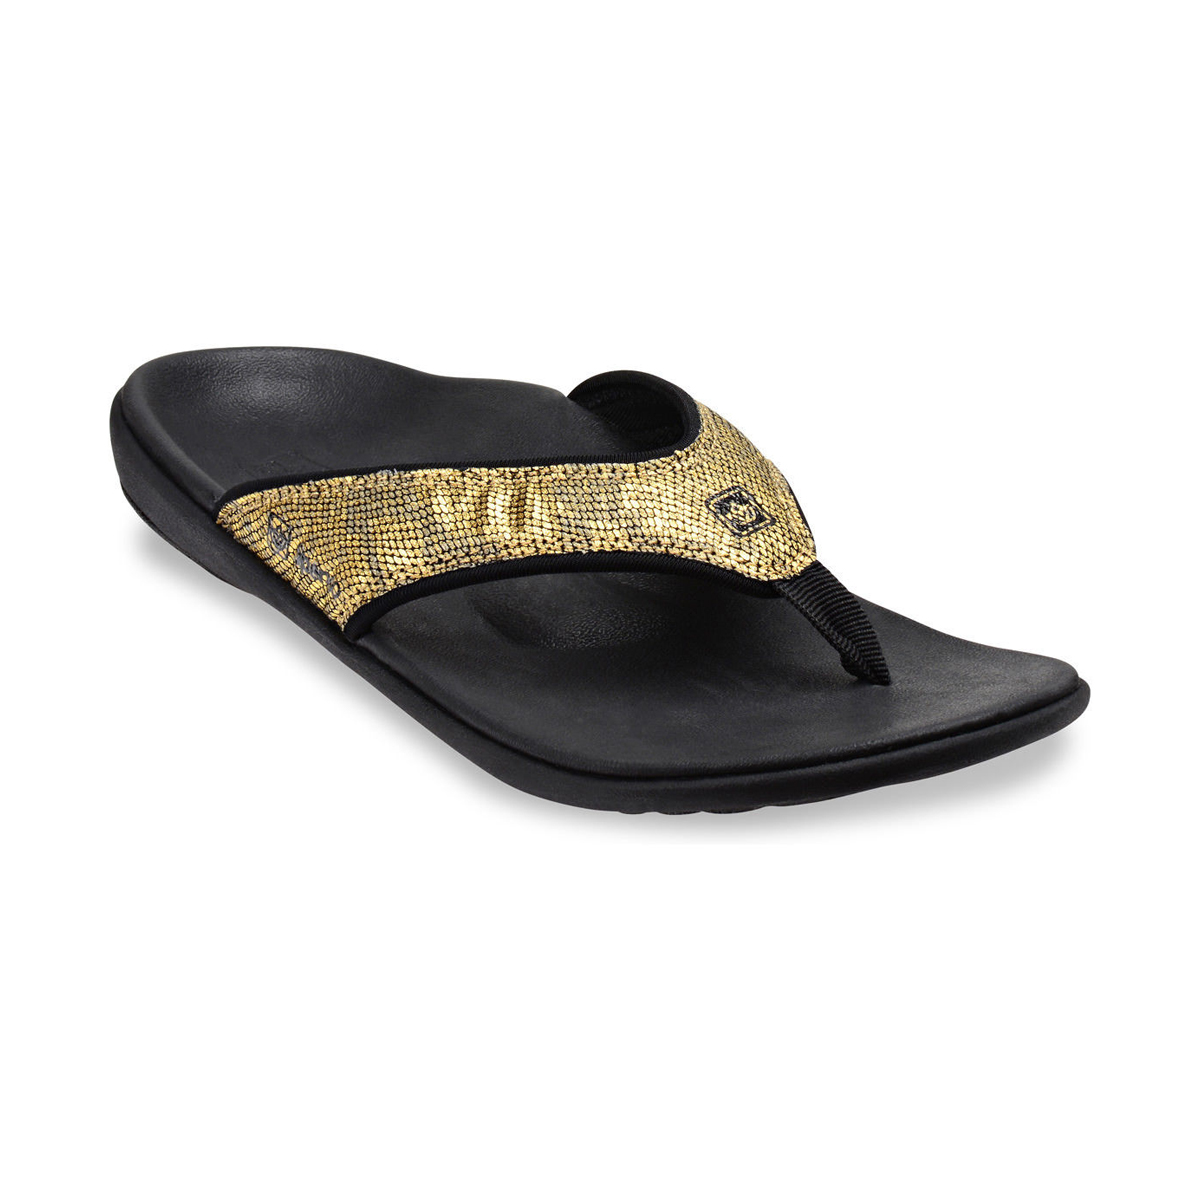 cf93db75be6 Details about Spenco Women s Python Sandals Gold 6